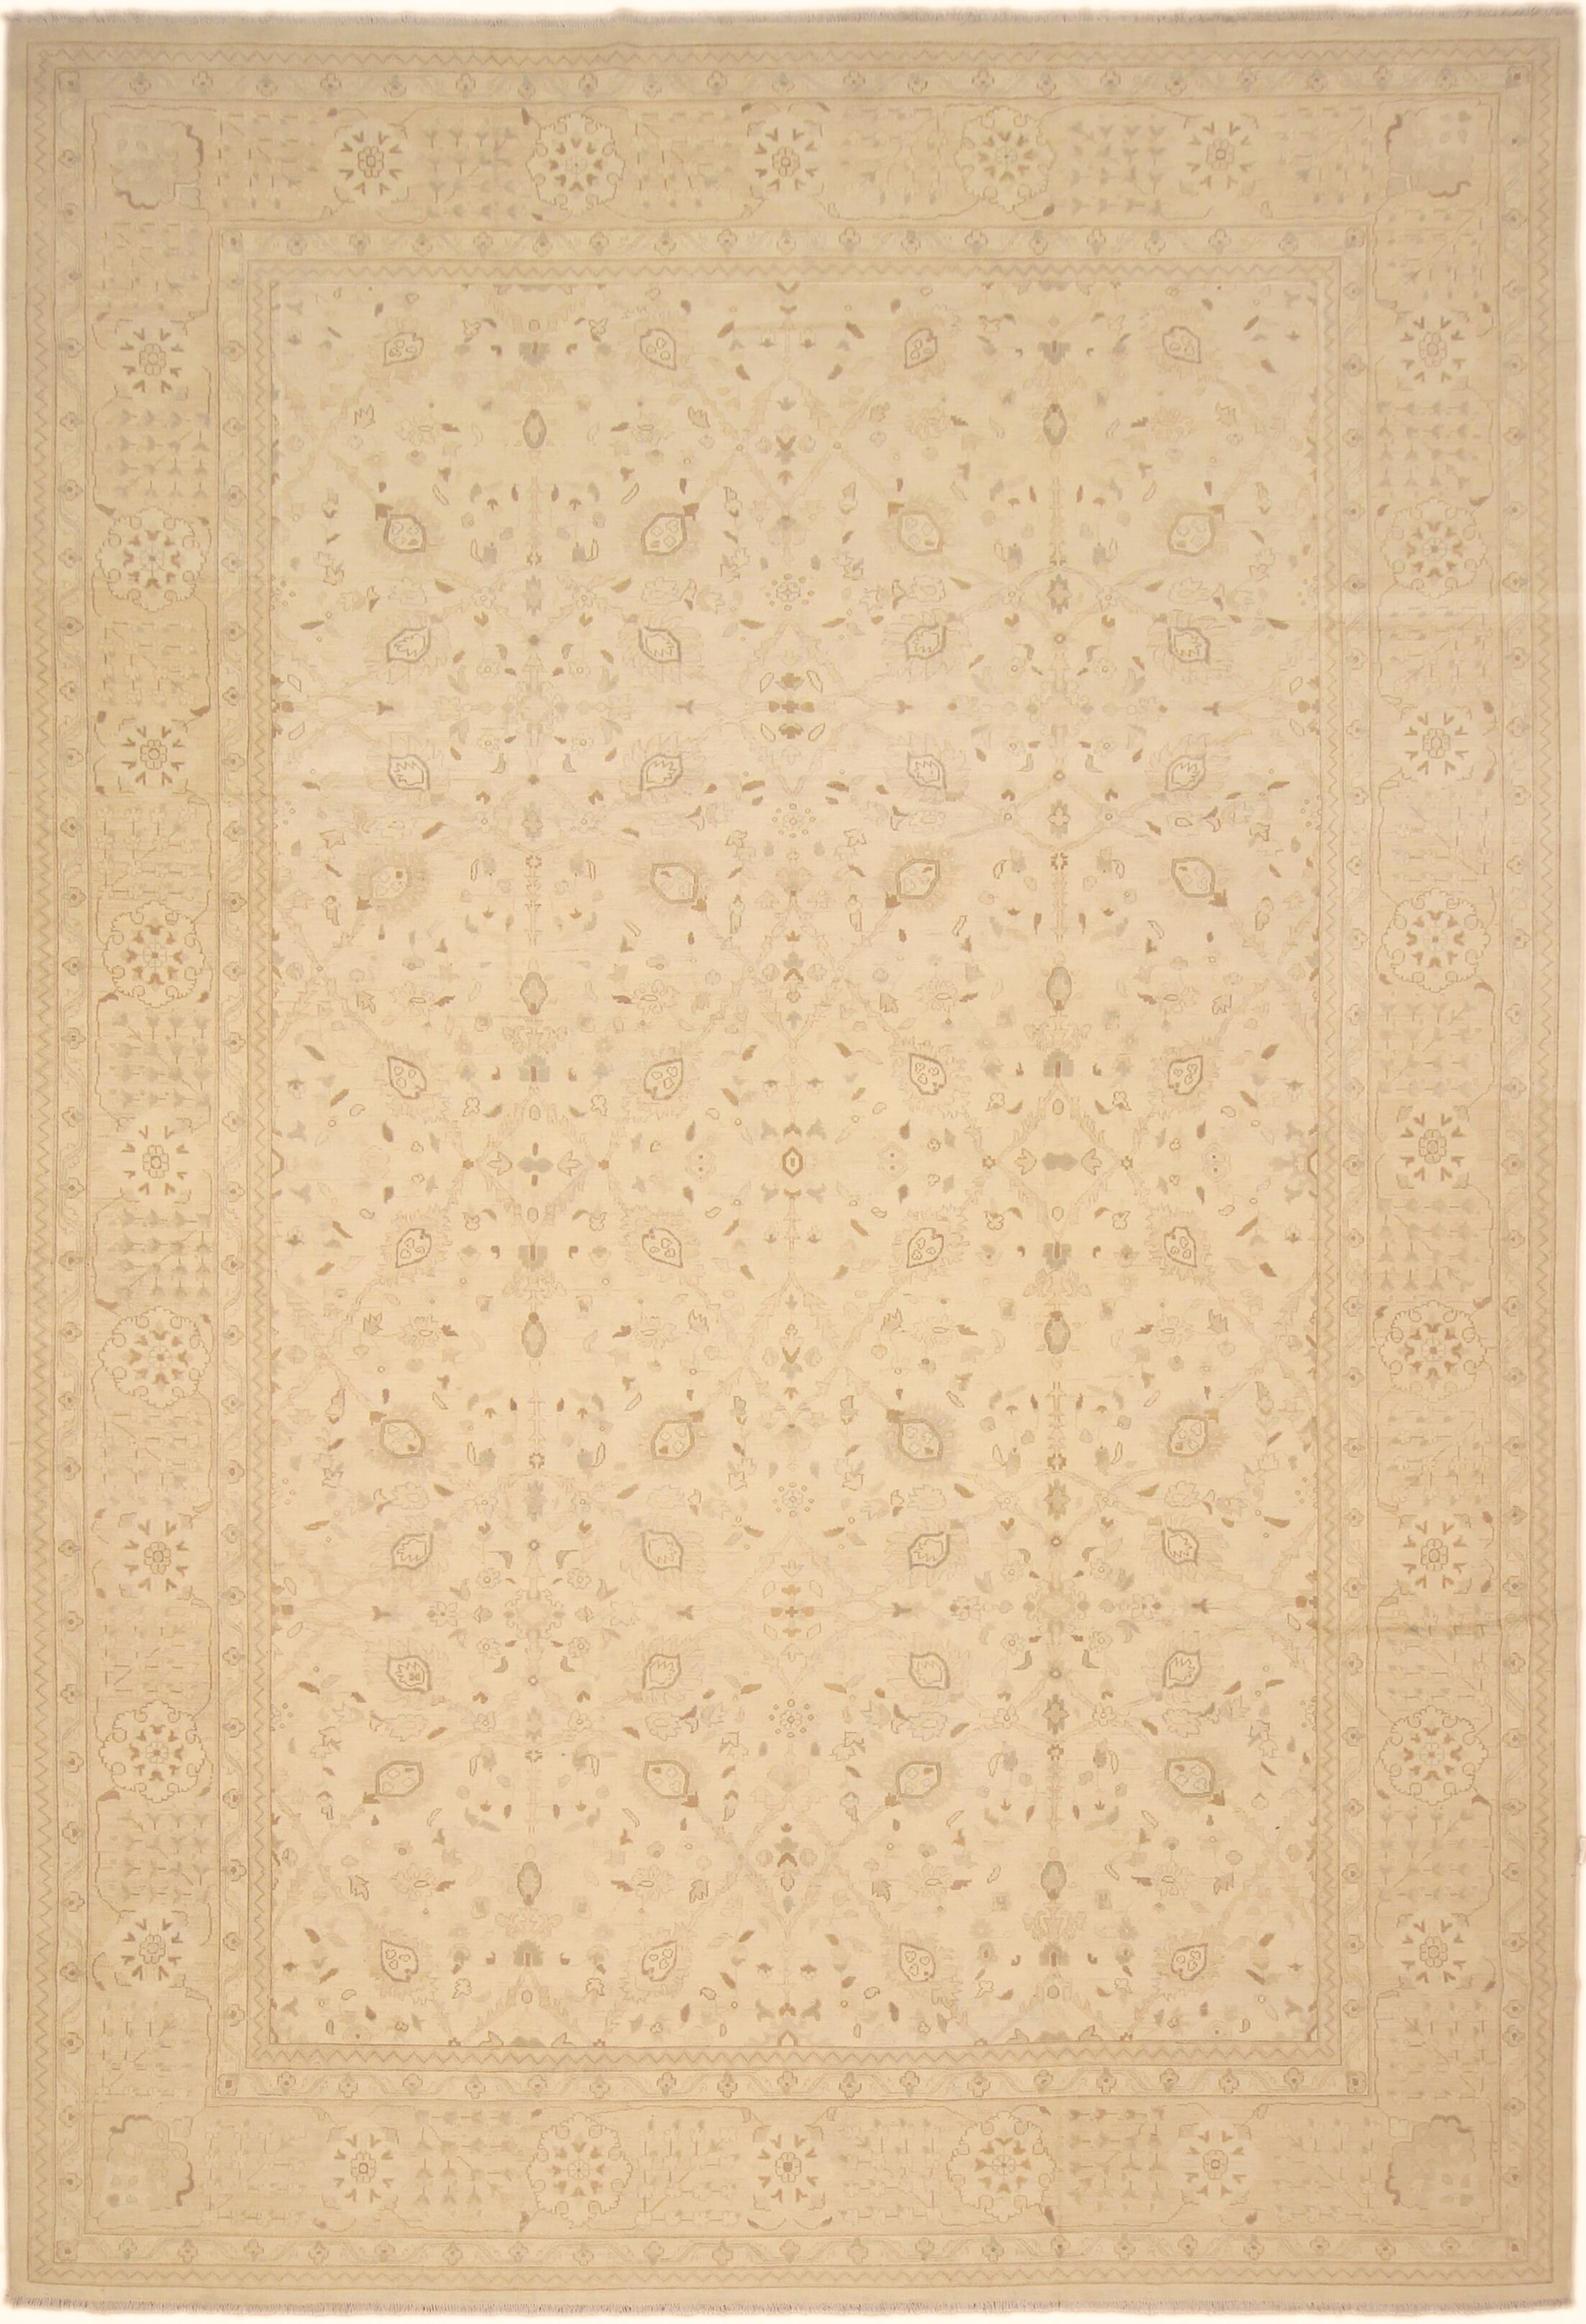 One-of-a-Kind Bolesworth Sun-Faded Hand-Knotted Wool Ivory/Tan Area Rug